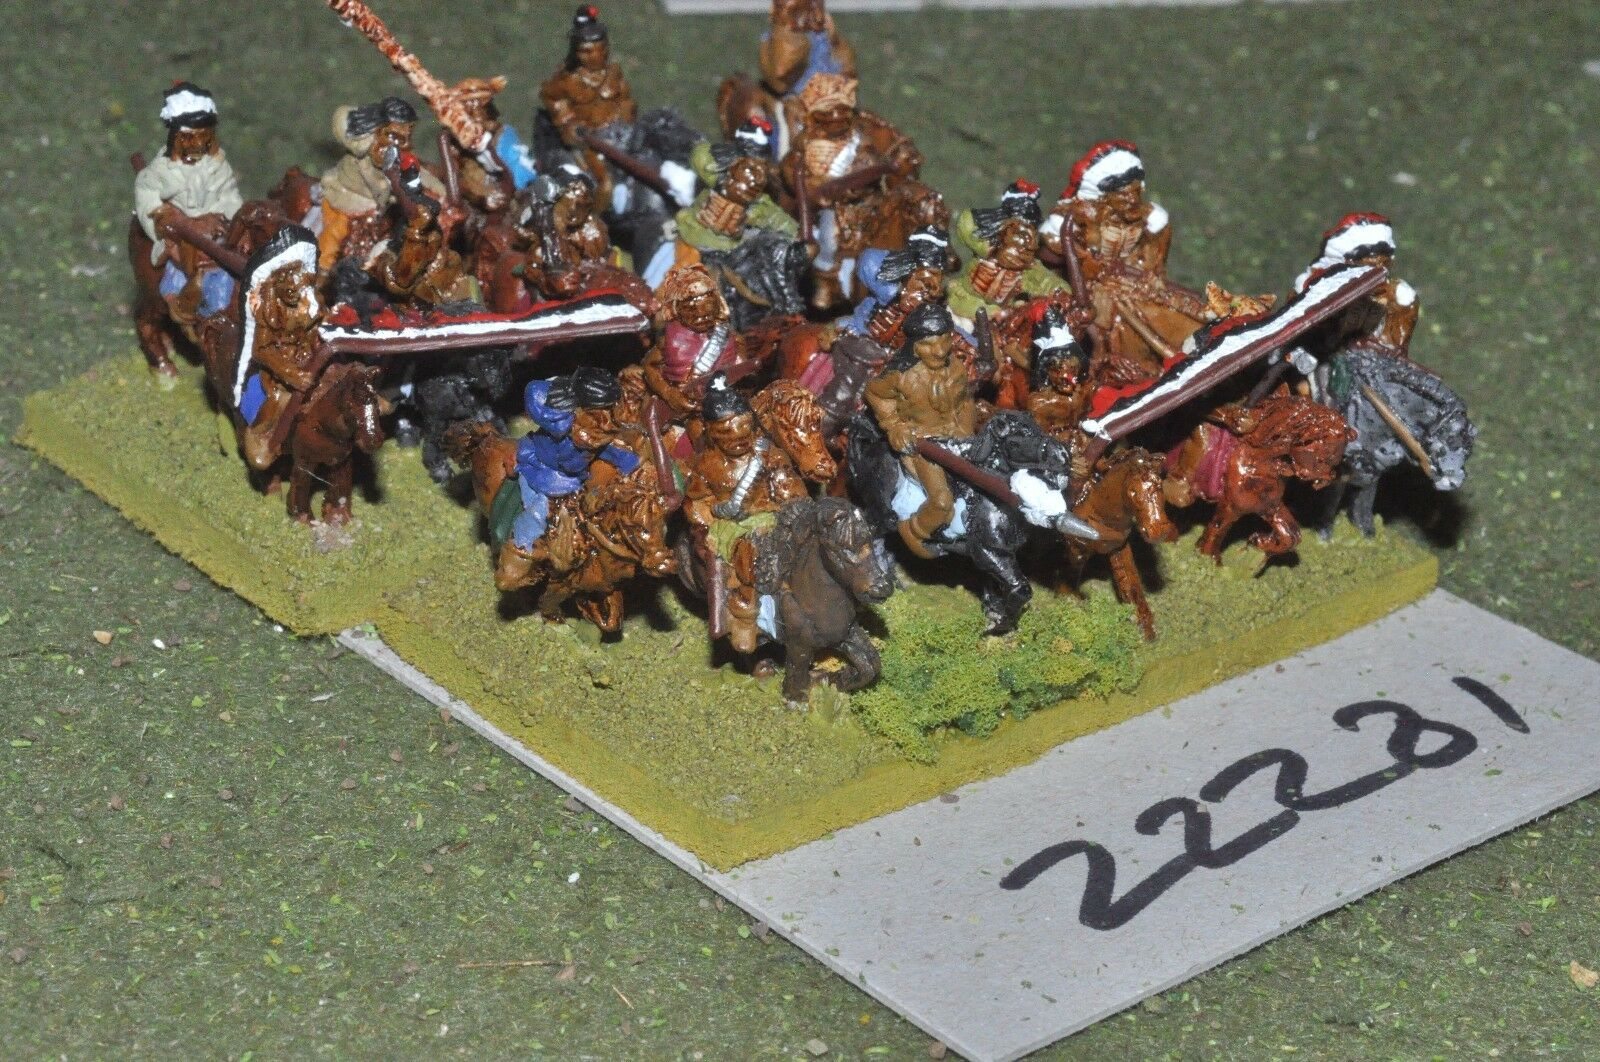 15mm ACW India-Old West guerreros de 20 figuras de Caballería-CAV (22281)